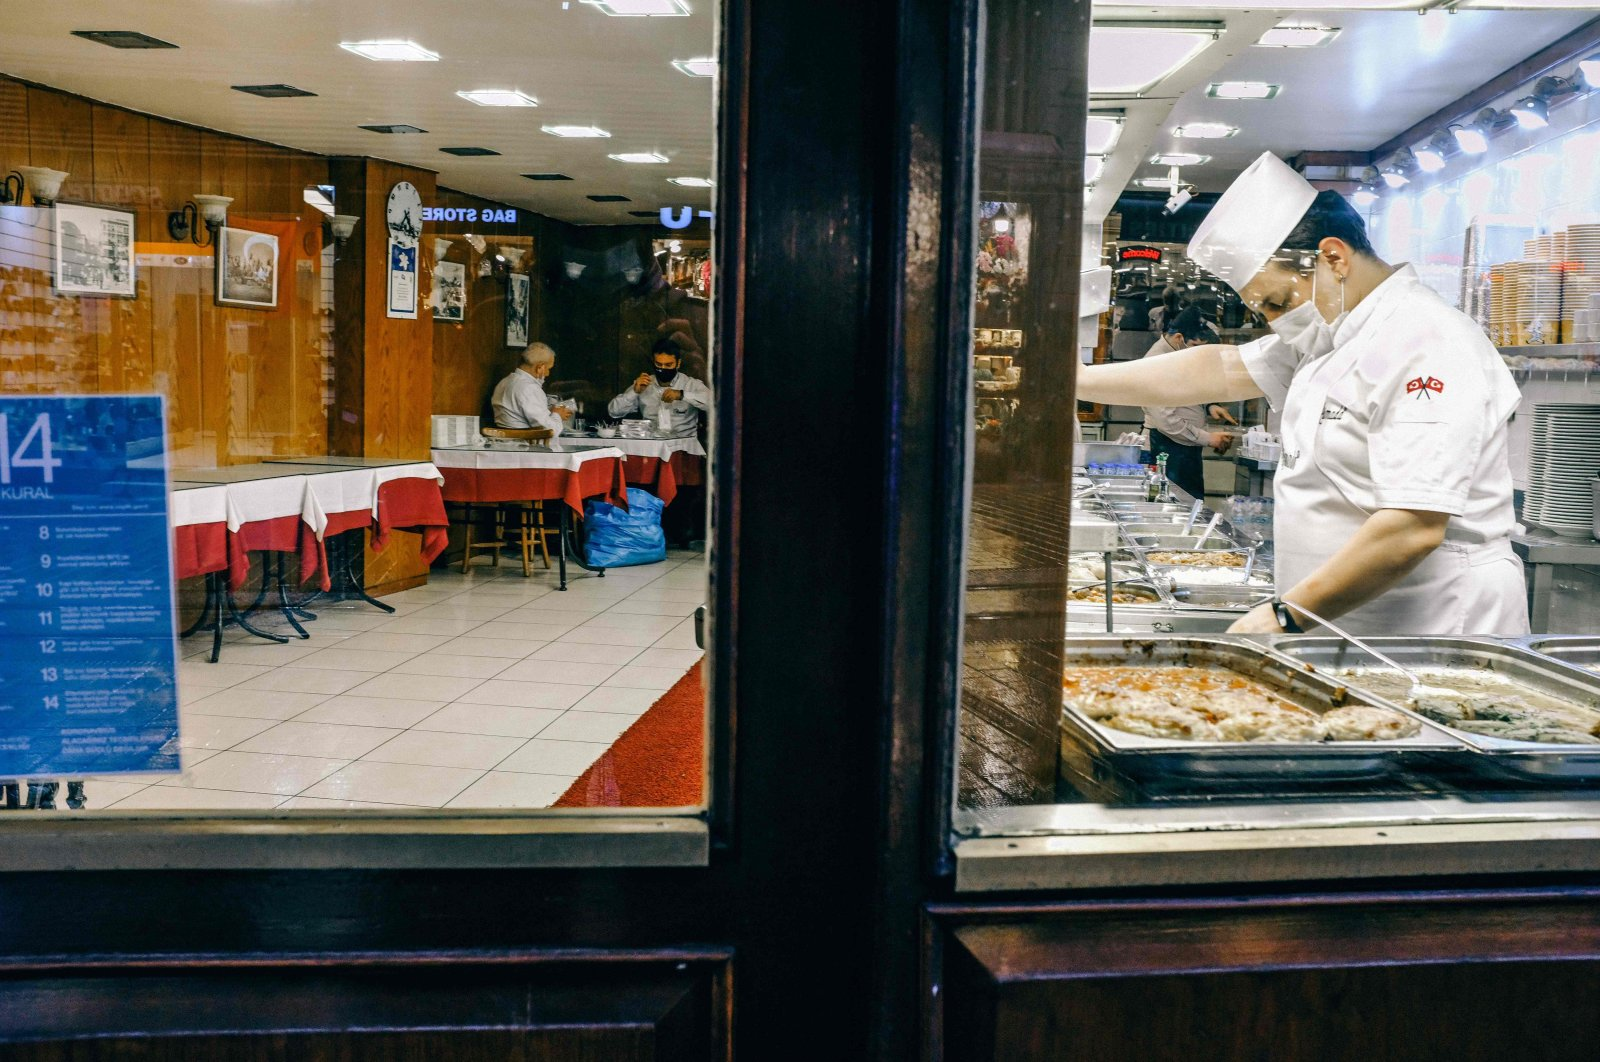 A worker stands behind a counter in a partially empty restaurant on famous Istiklal Avenue in Istanbul, Turkey, Dec. 15, 2020. (AFP Photo)